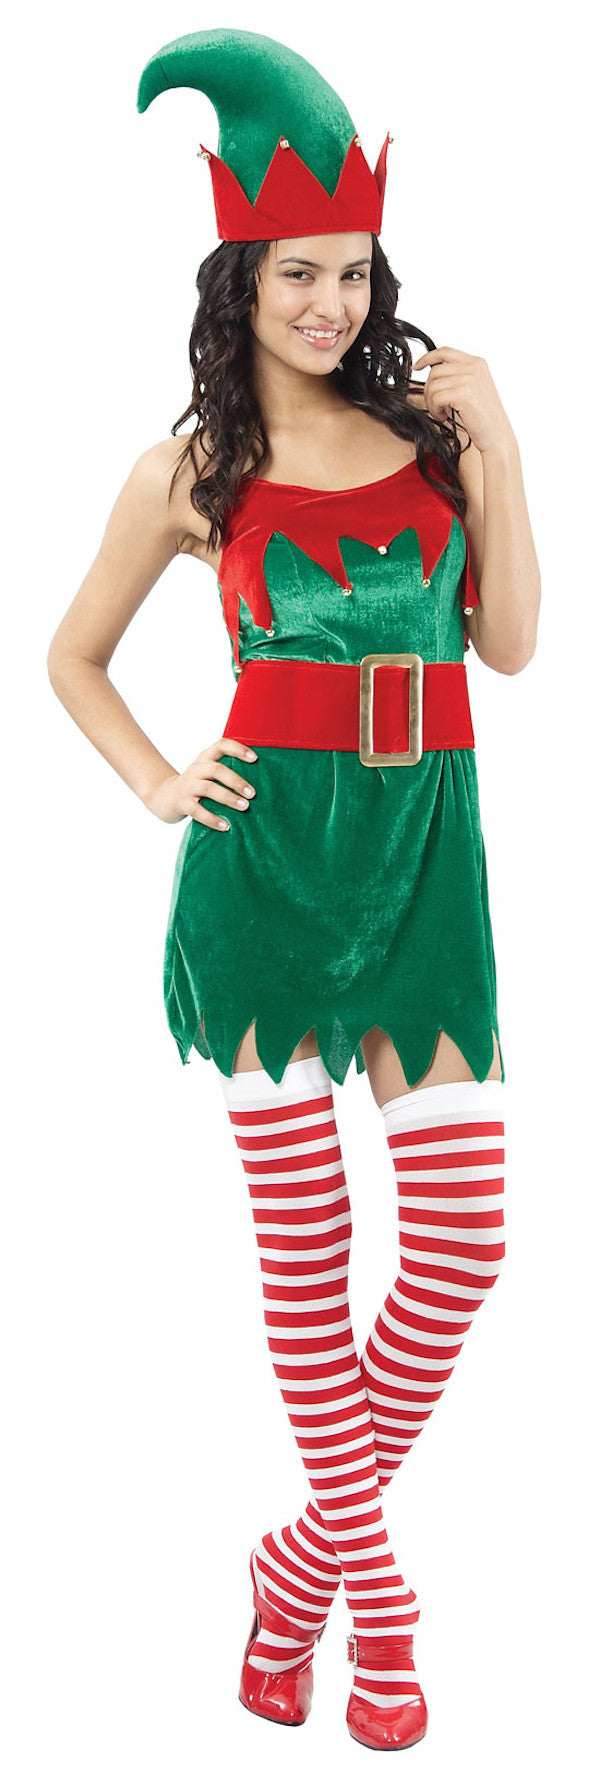 Elf Lady Costume, Adult - Size L